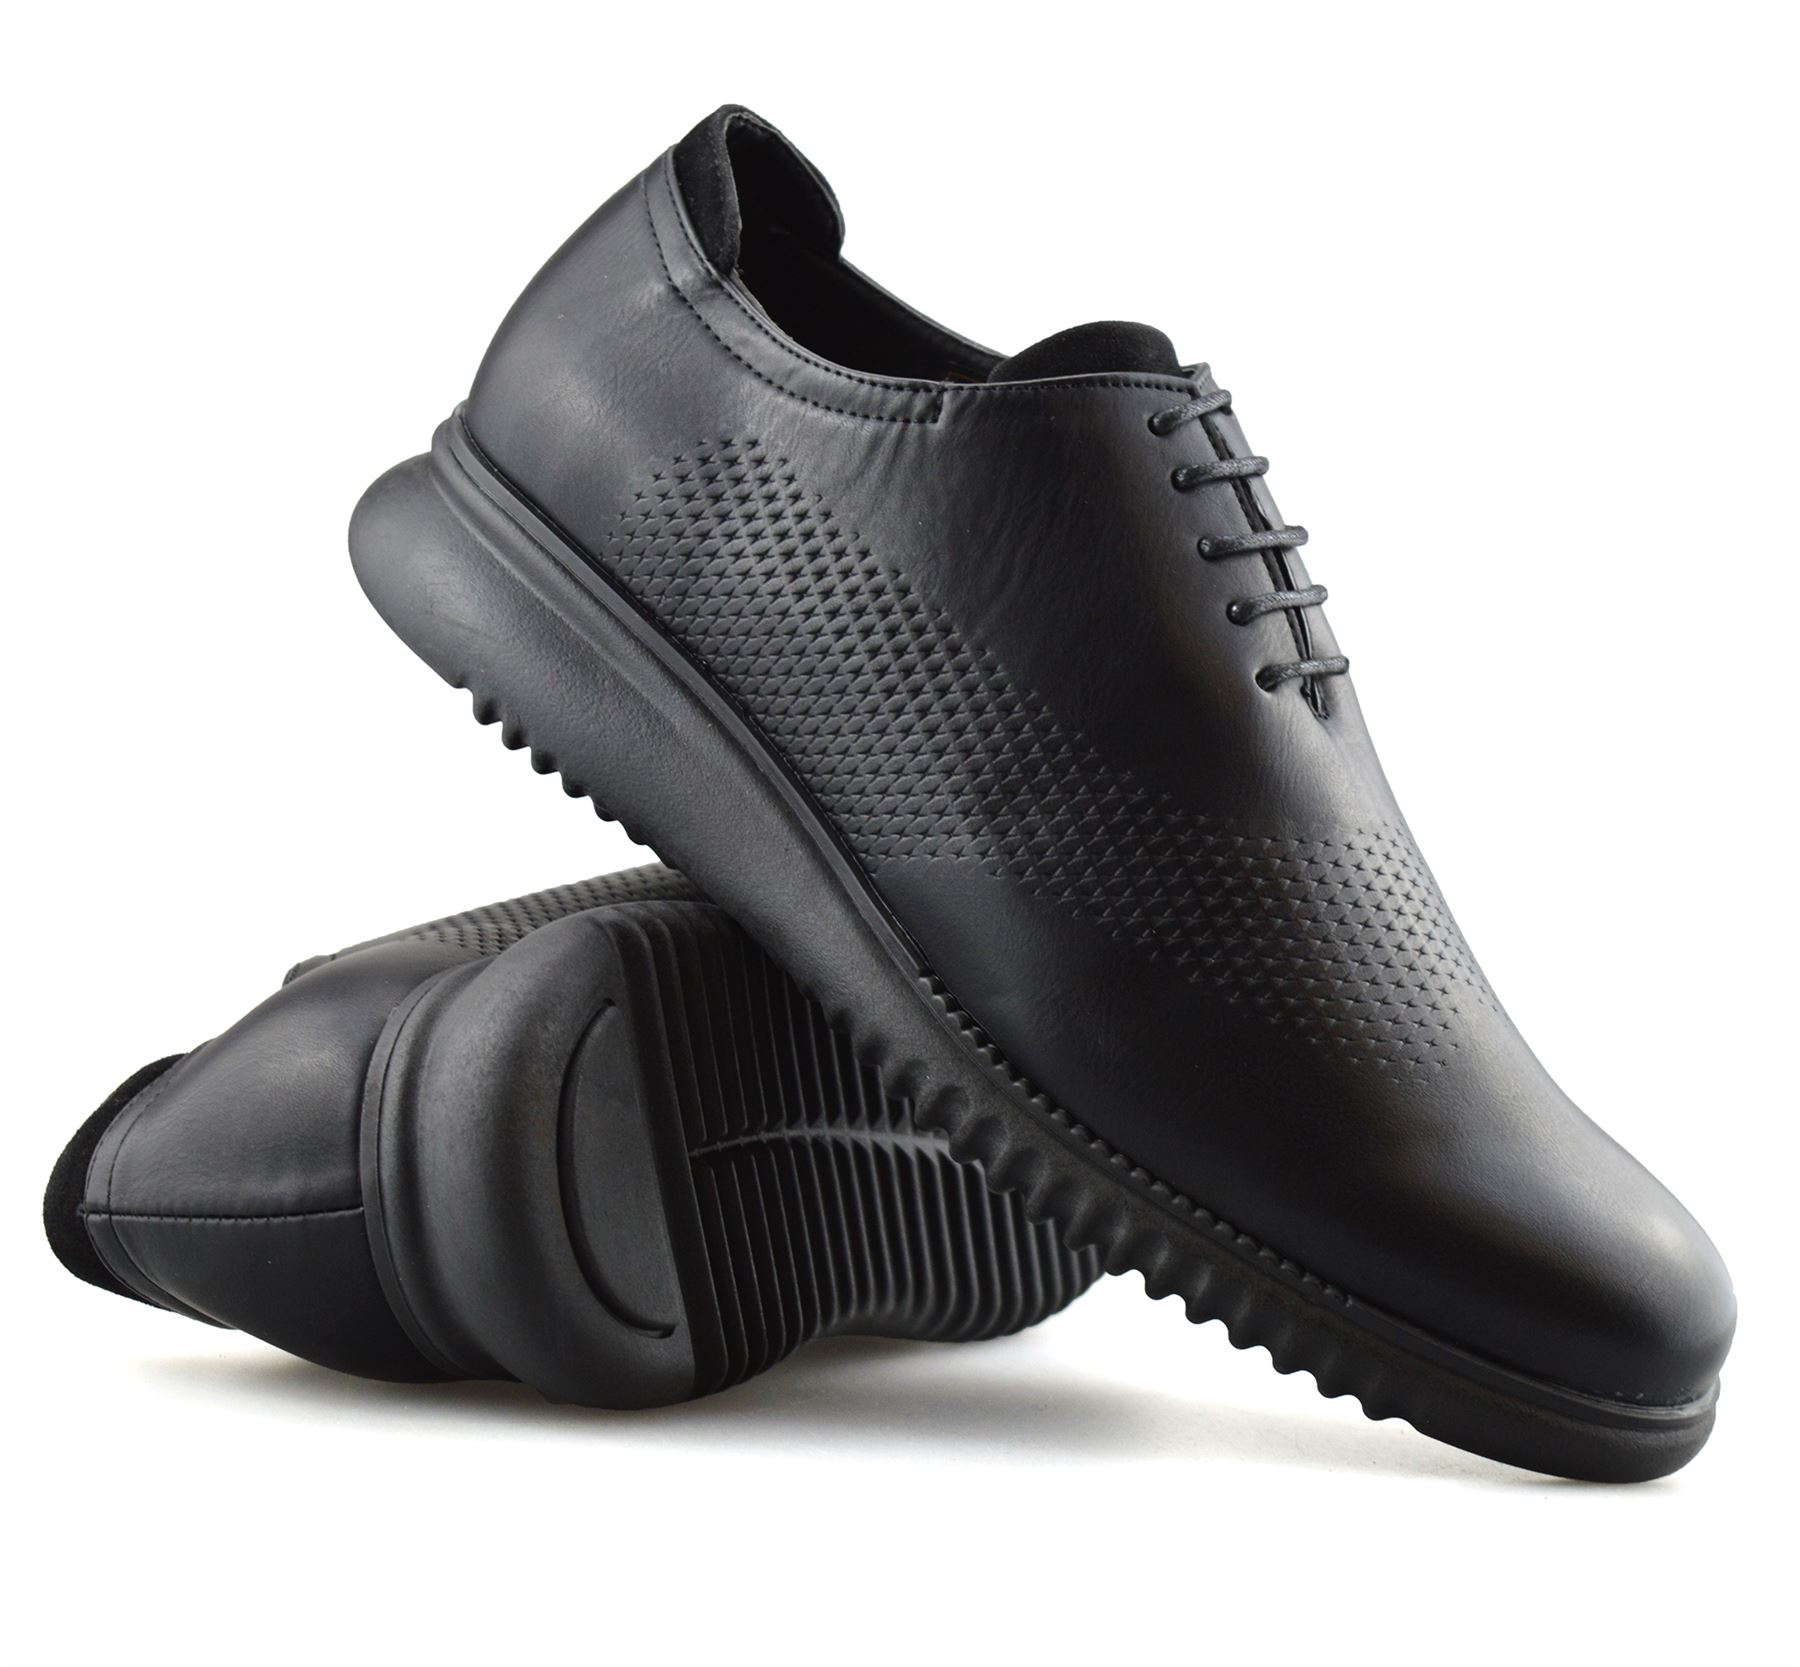 Mens-Casual-Smart-Lace-Up-Oxford-Brogue-Walking-Work-Office-Trainers-Shoes-Size thumbnail 17